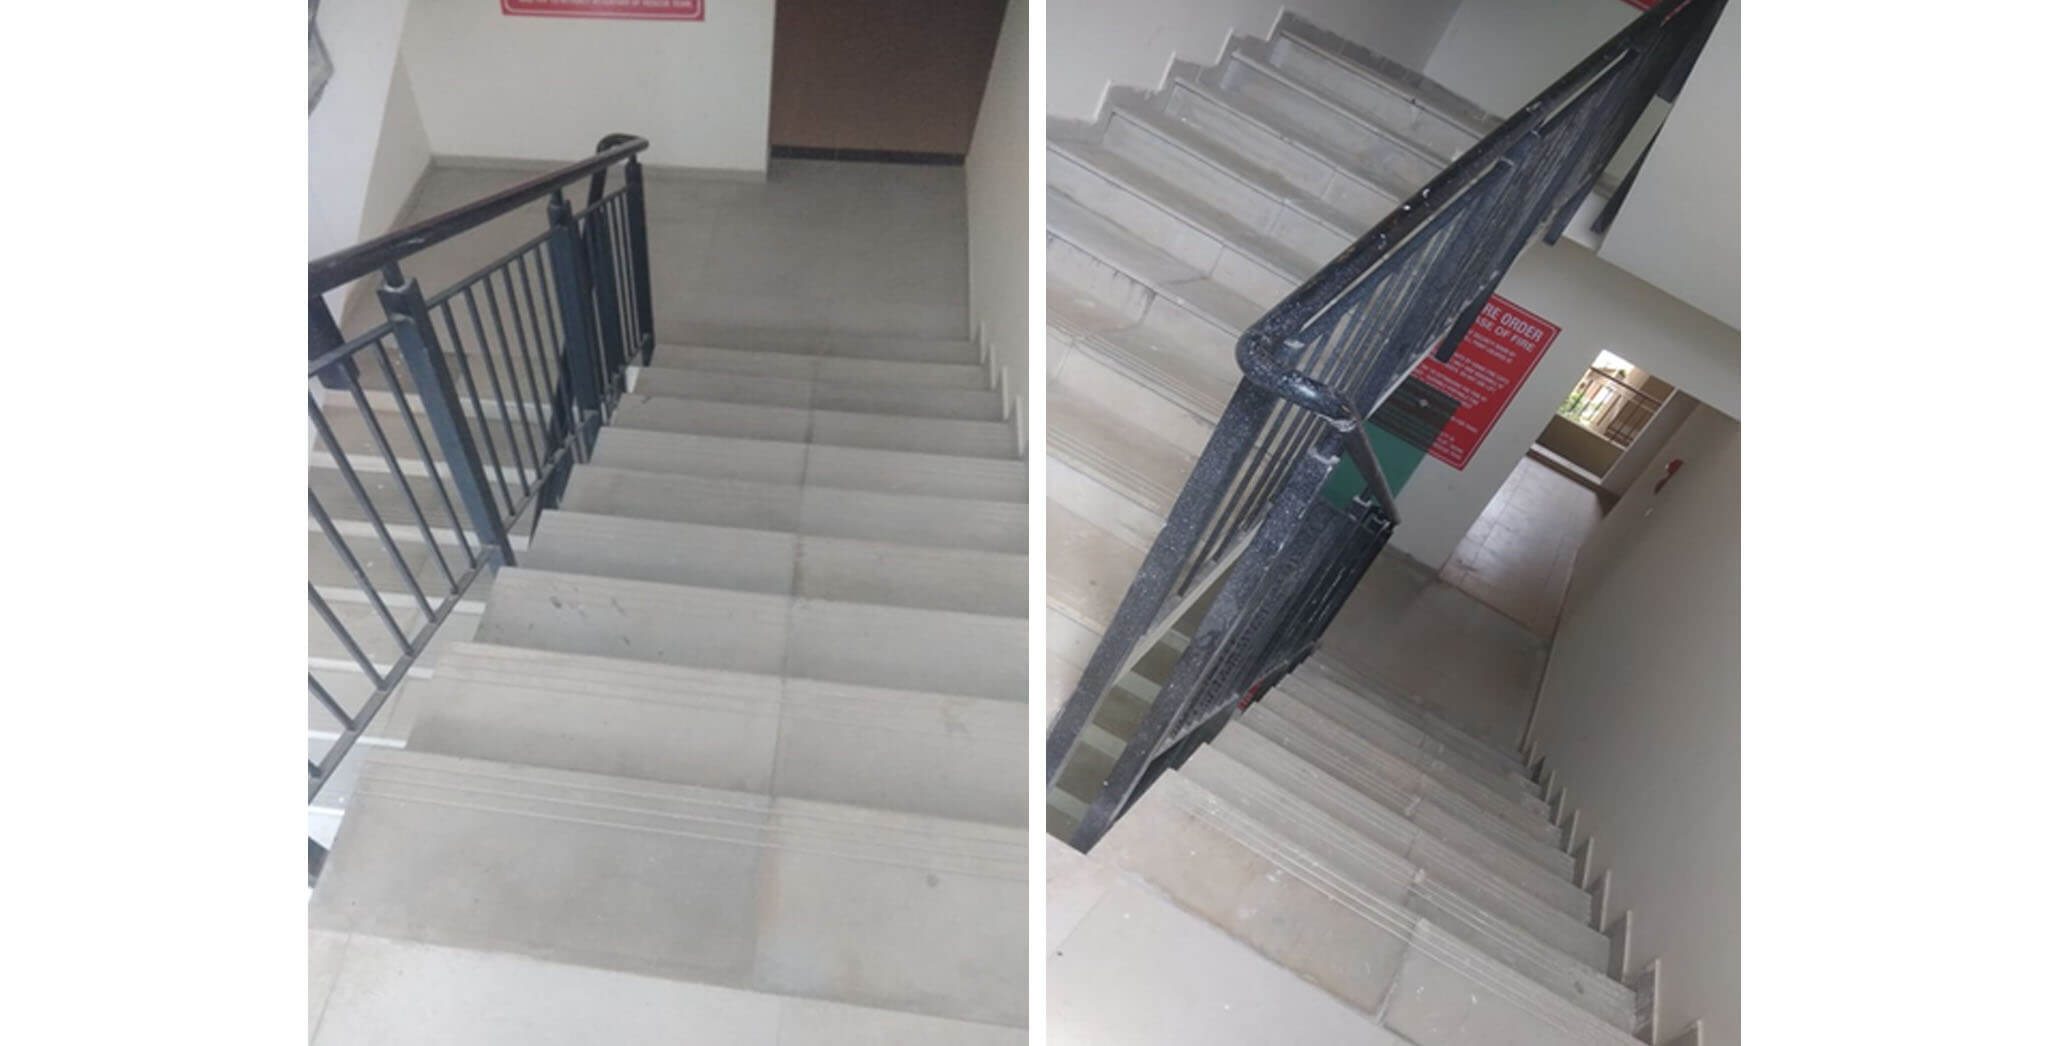 May 2020 - Deodar—E block: Staircase–Final coat painting in progress